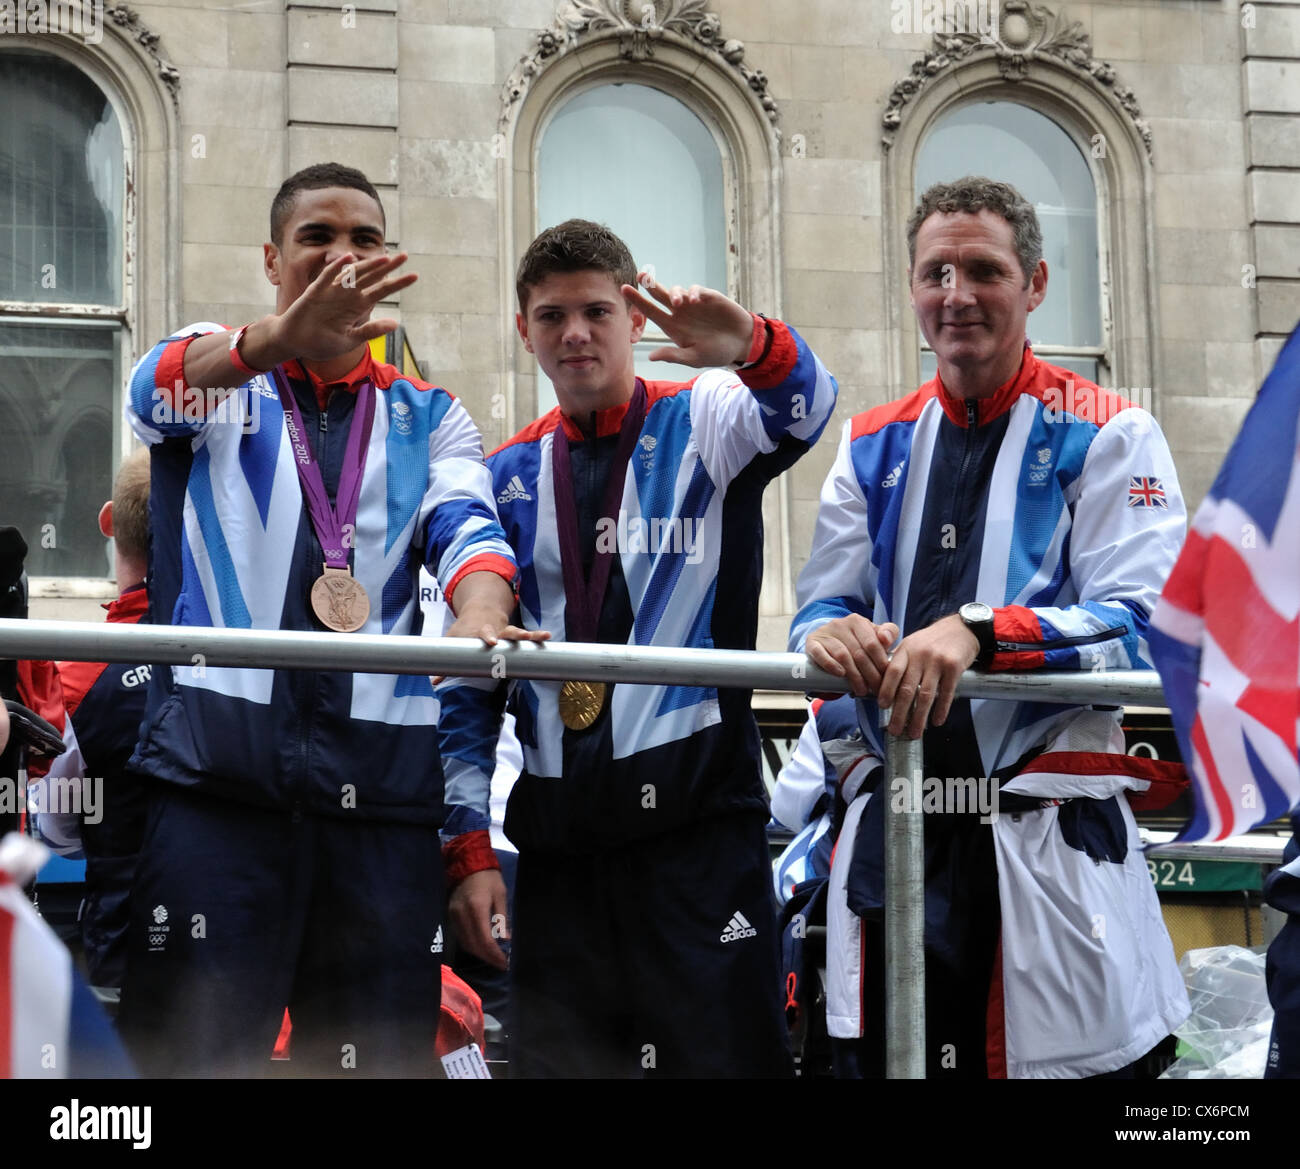 Anthony Ogogo, Luke Campbell, Lee Pullen (Coach). Boxing.  The London 2012 Medal Winners Parade. - Stock Image